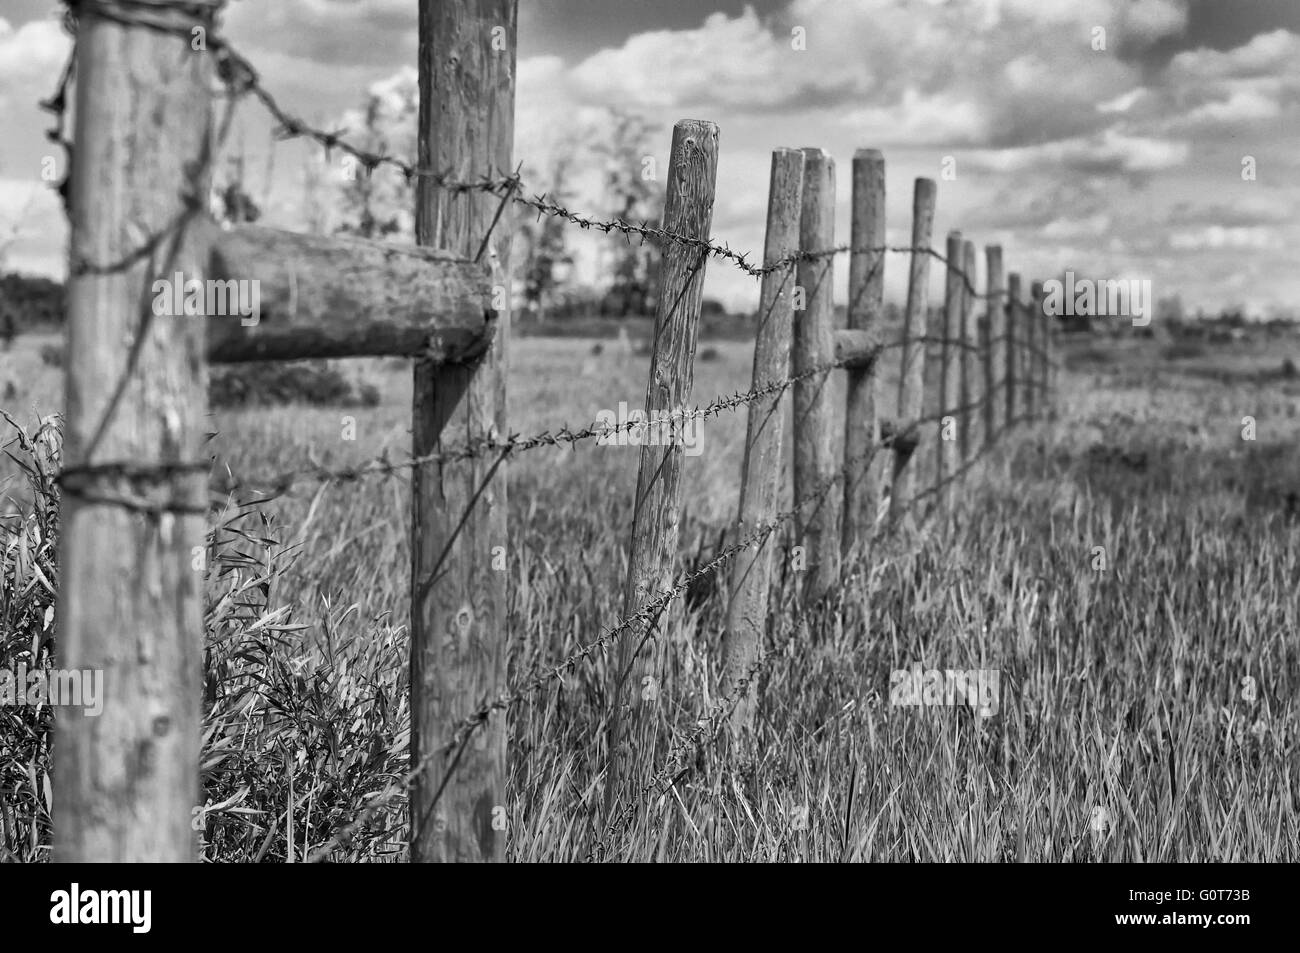 Black and white photo of old barn fence. - Stock Image